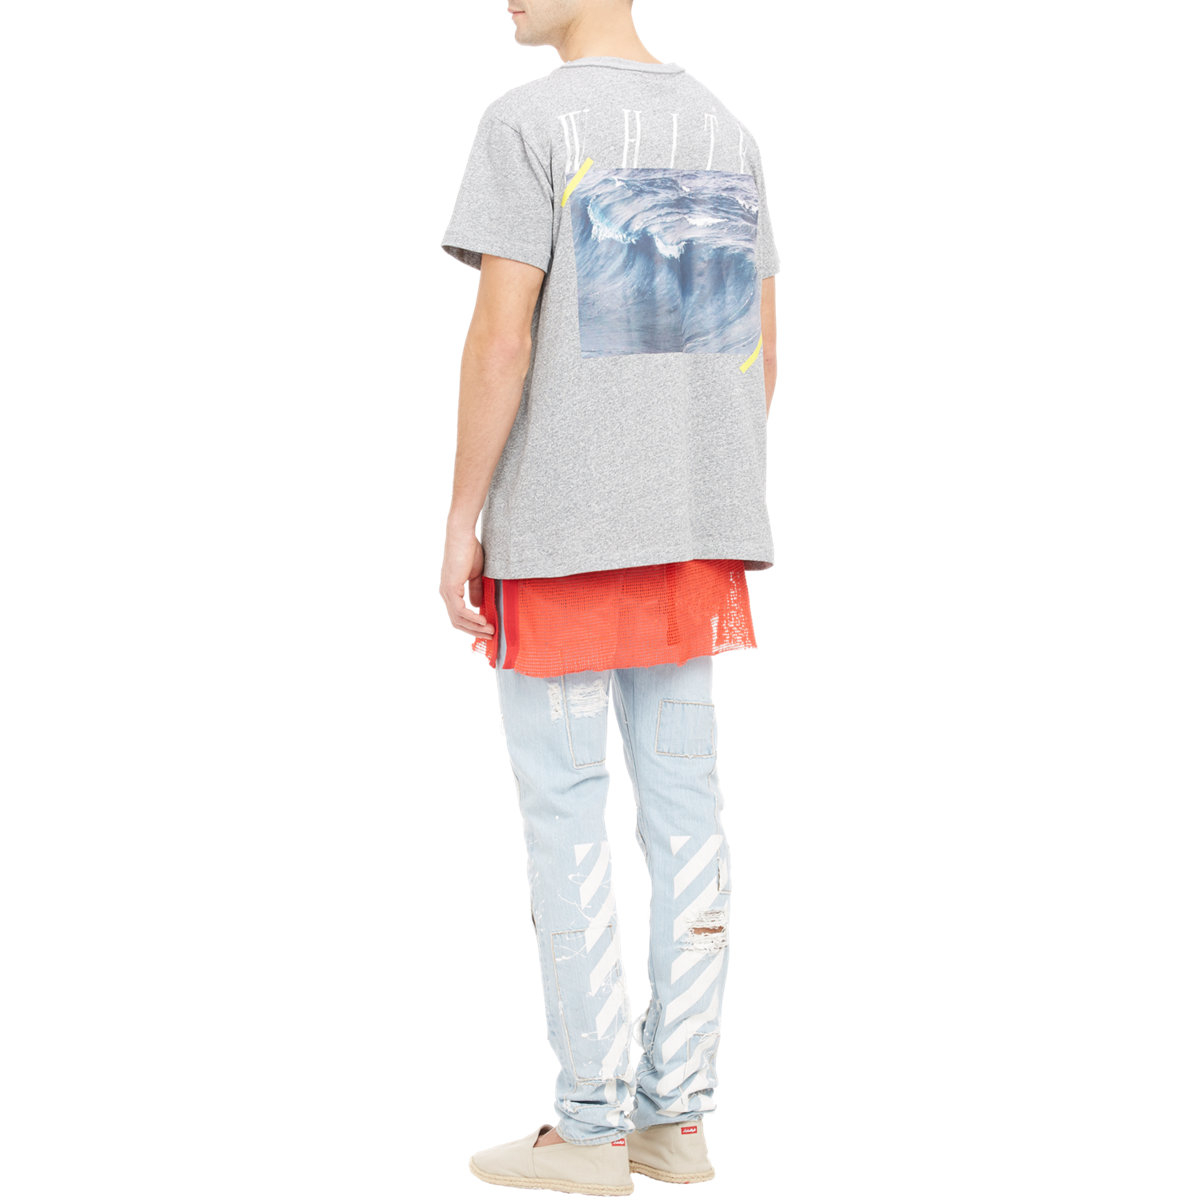 Off white c o virgil abloh waves graphic t shirt in gray for Off white virgil abloh